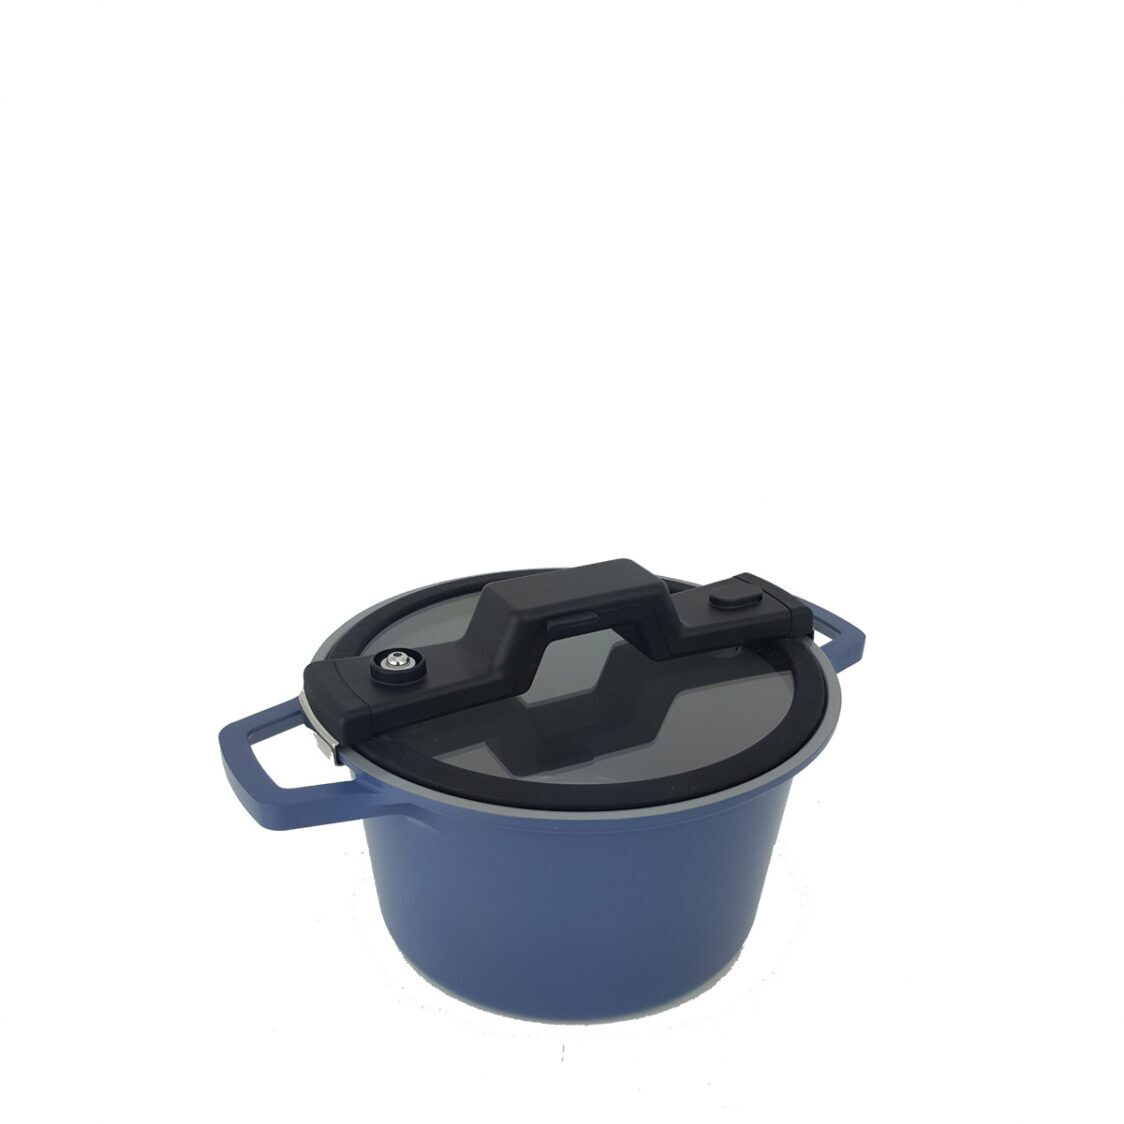 Neoflam SmartCook Xtrema Induction 24cm Low Pressure Cooker Blue